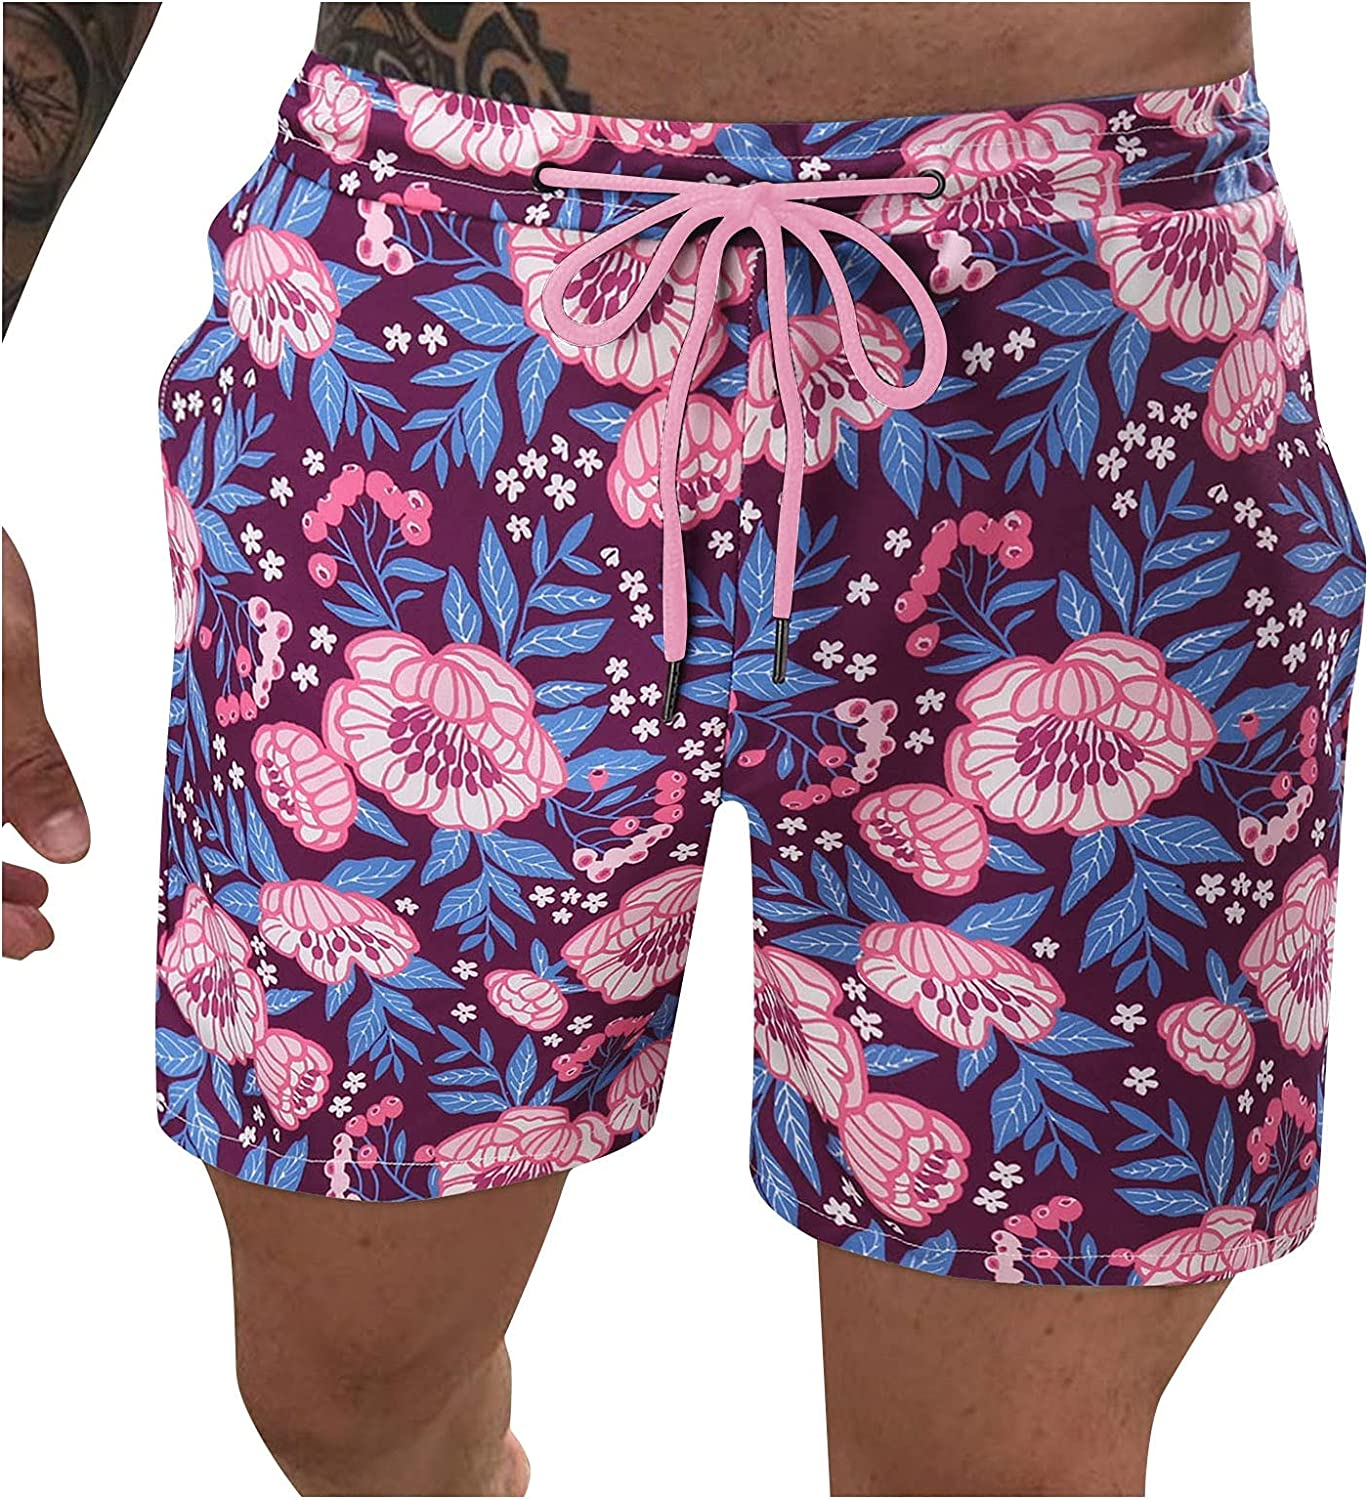 FUNEY Summer Shorts for Mens Casual Swim Trunks Quick Dry Breathable Sports Beach Surfing Running Swimming Board Shorts